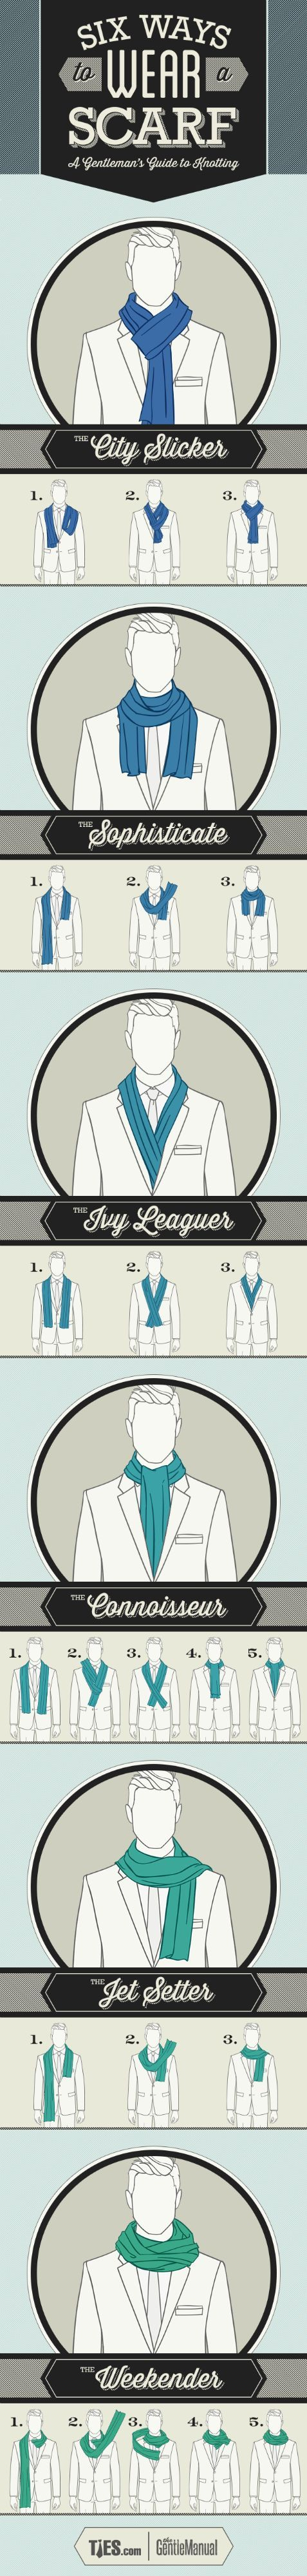 The Ultimate Gentleman Cheat Sheet Every Man Needs how to wear a scarve and totally nail it.